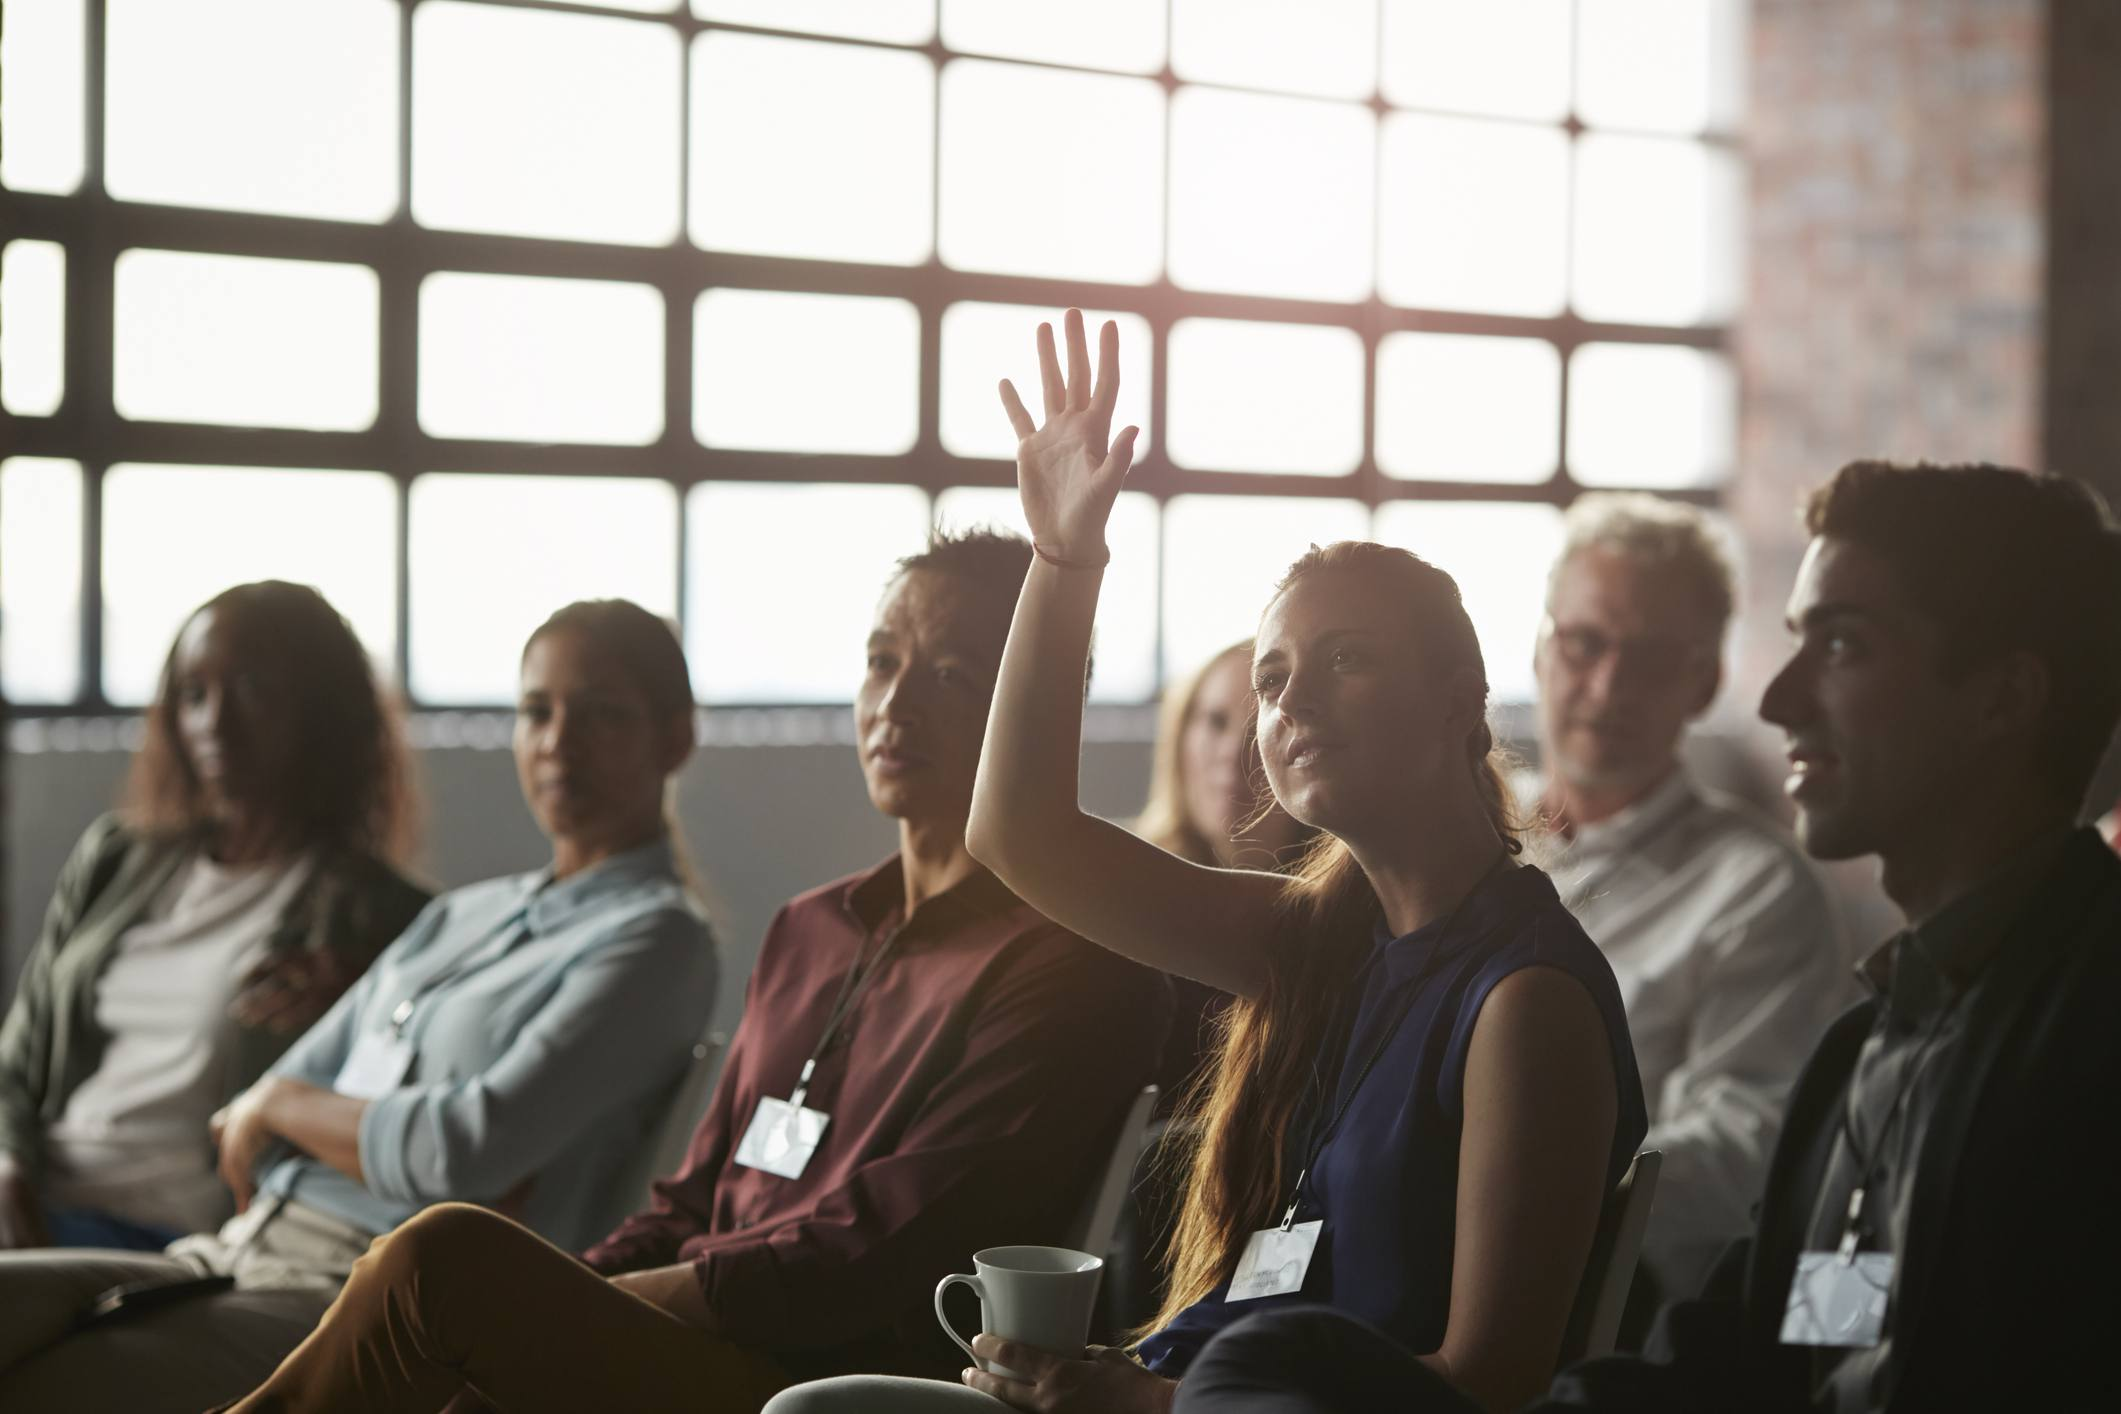 Woman raising hand in group of people sitting for presentation